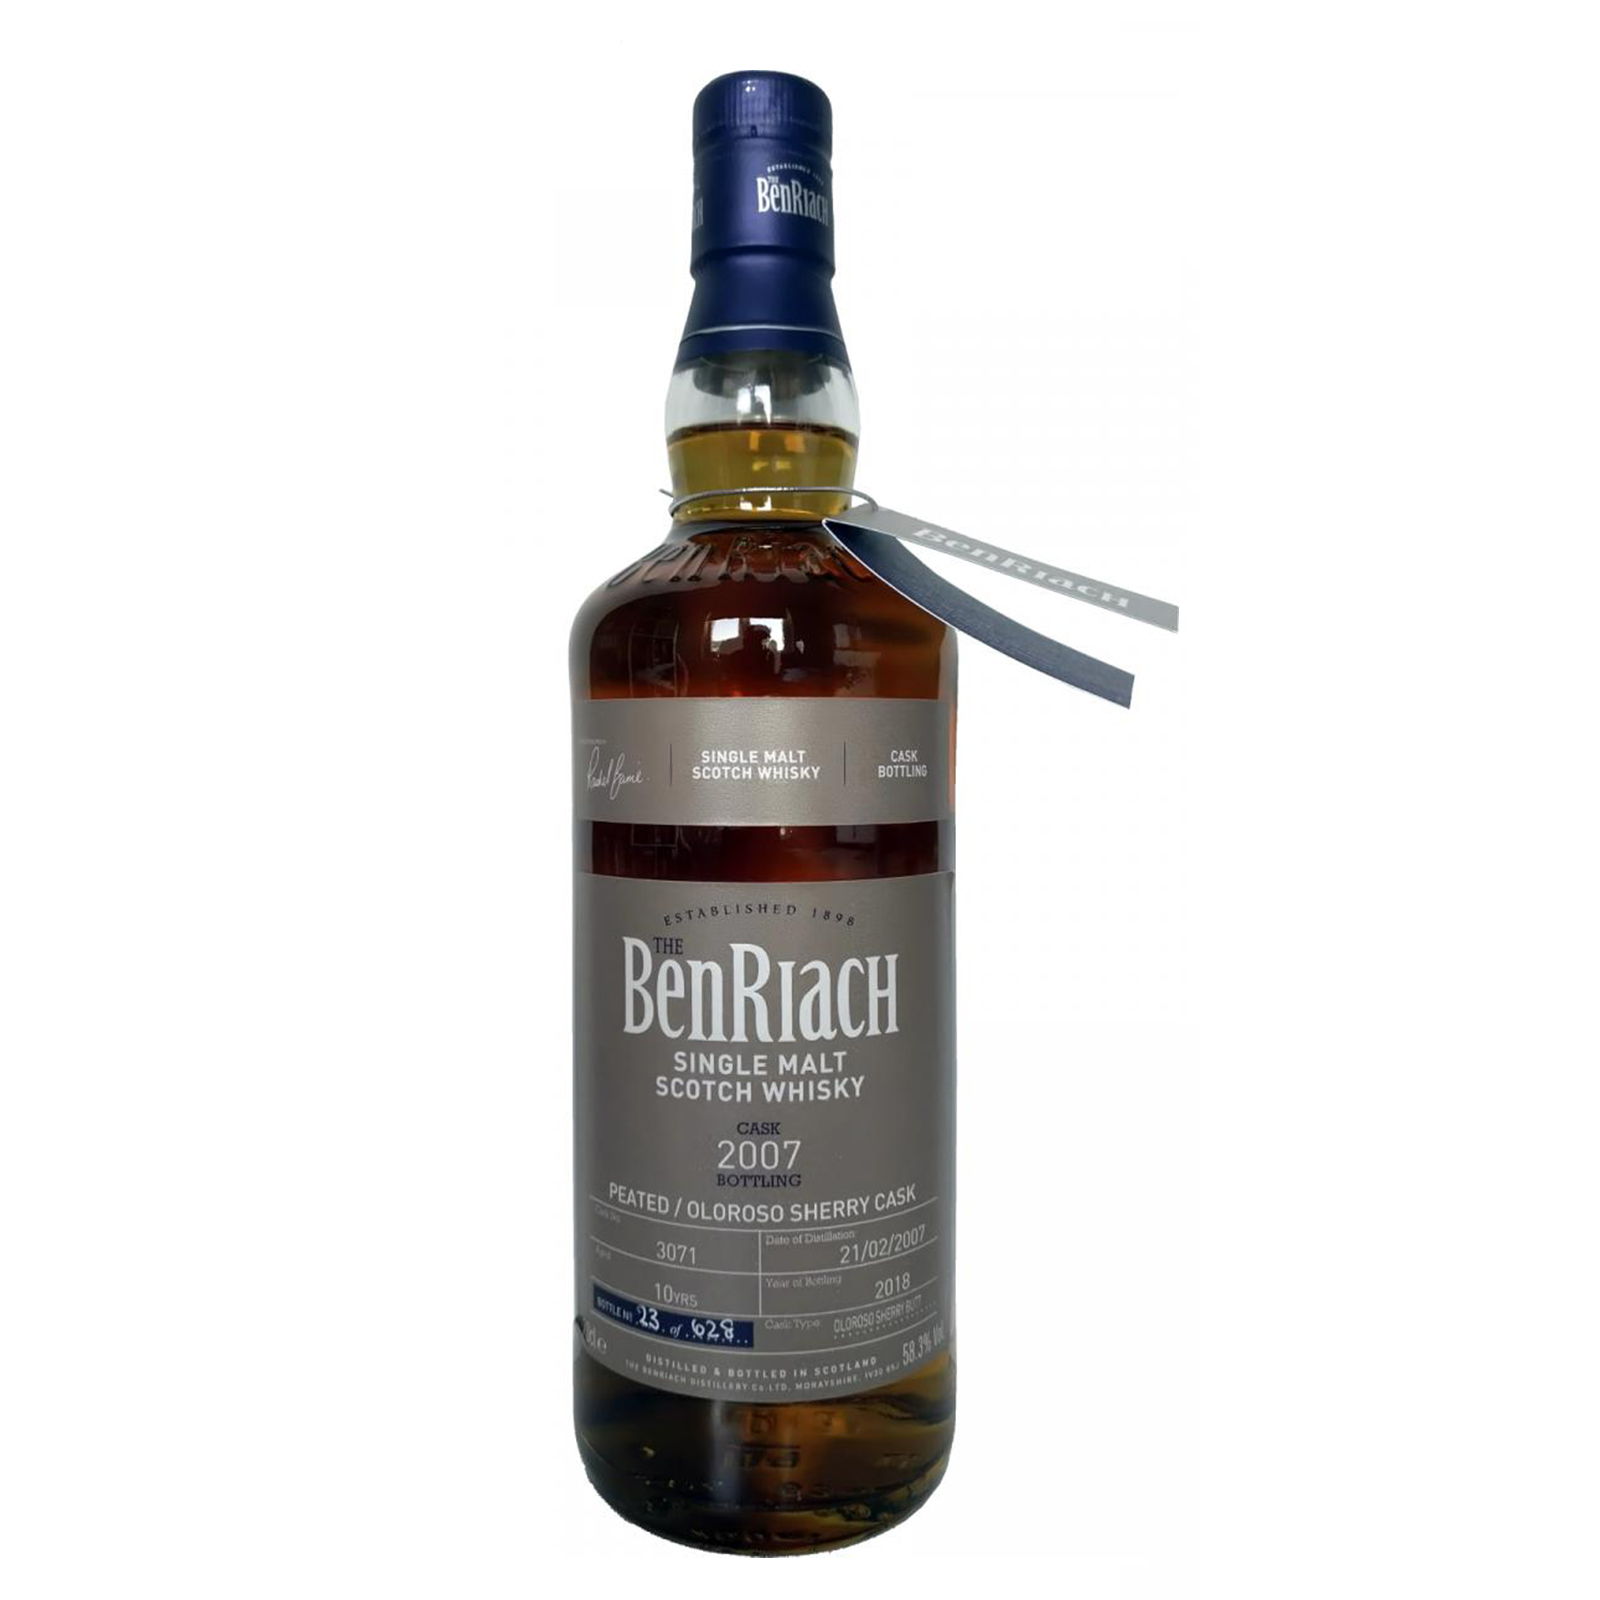 BenRiach 2007 10 years – cask #3071